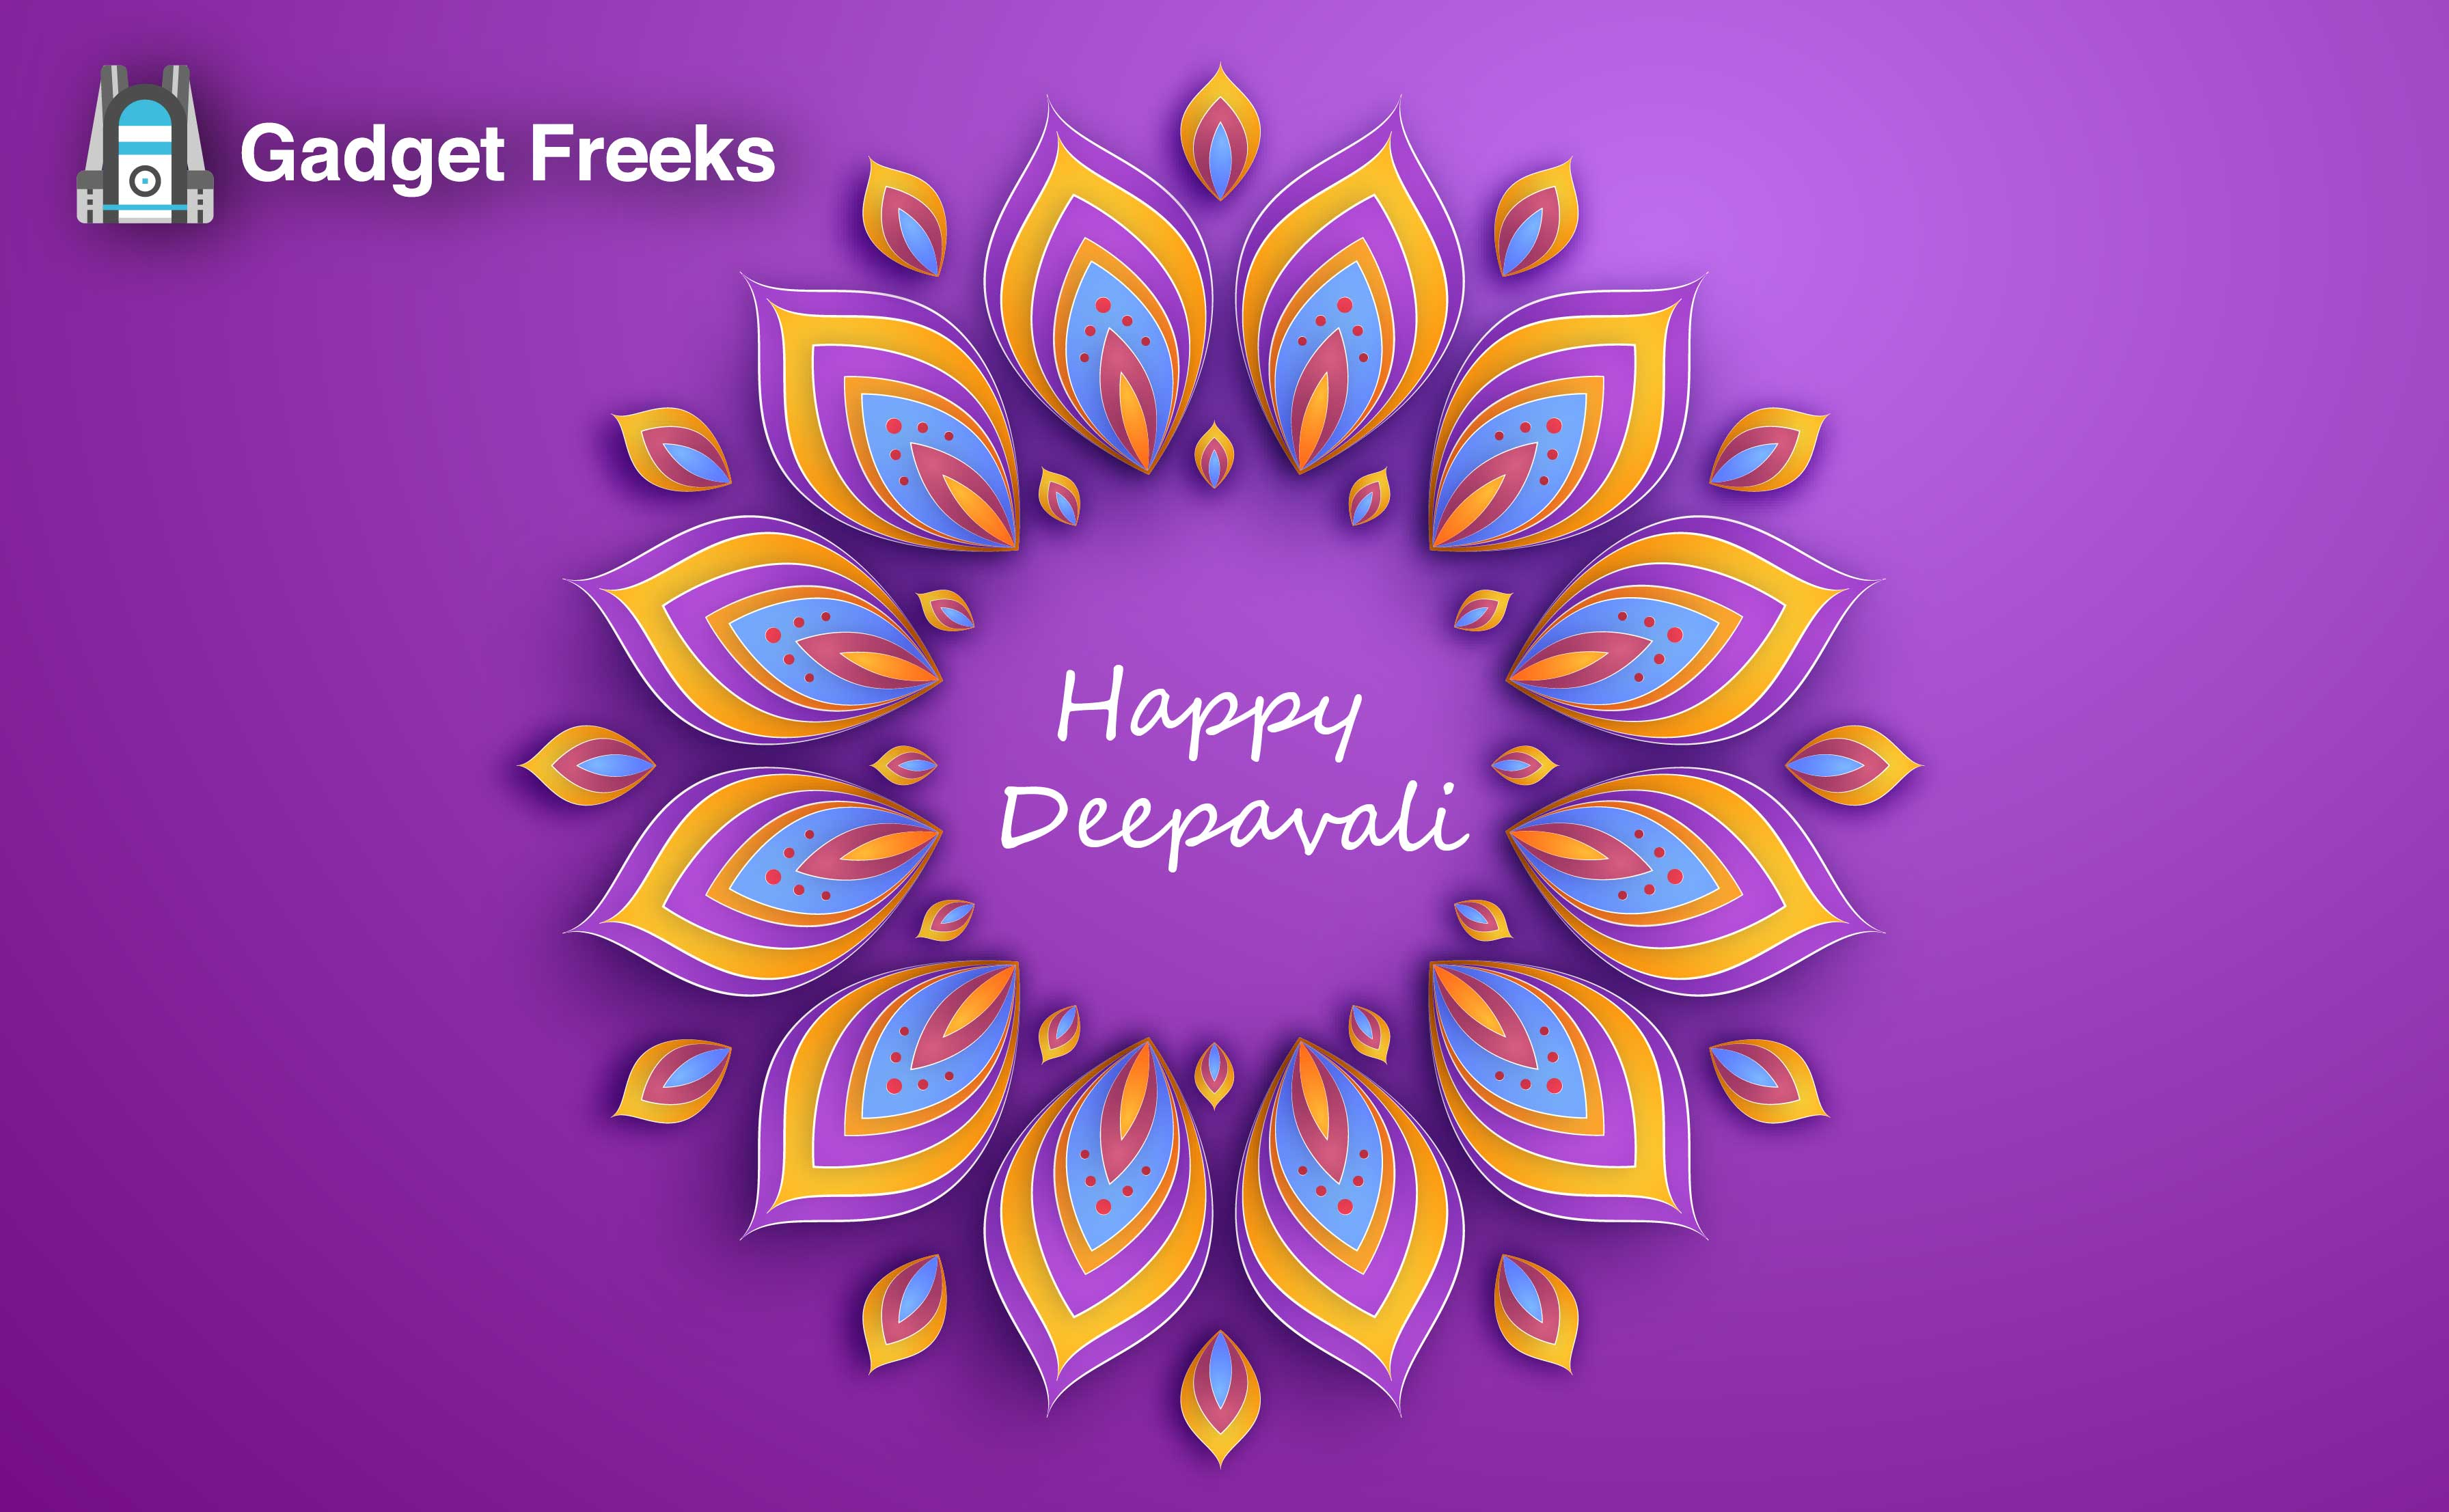 Happy Deepavali Images for Whatsapp